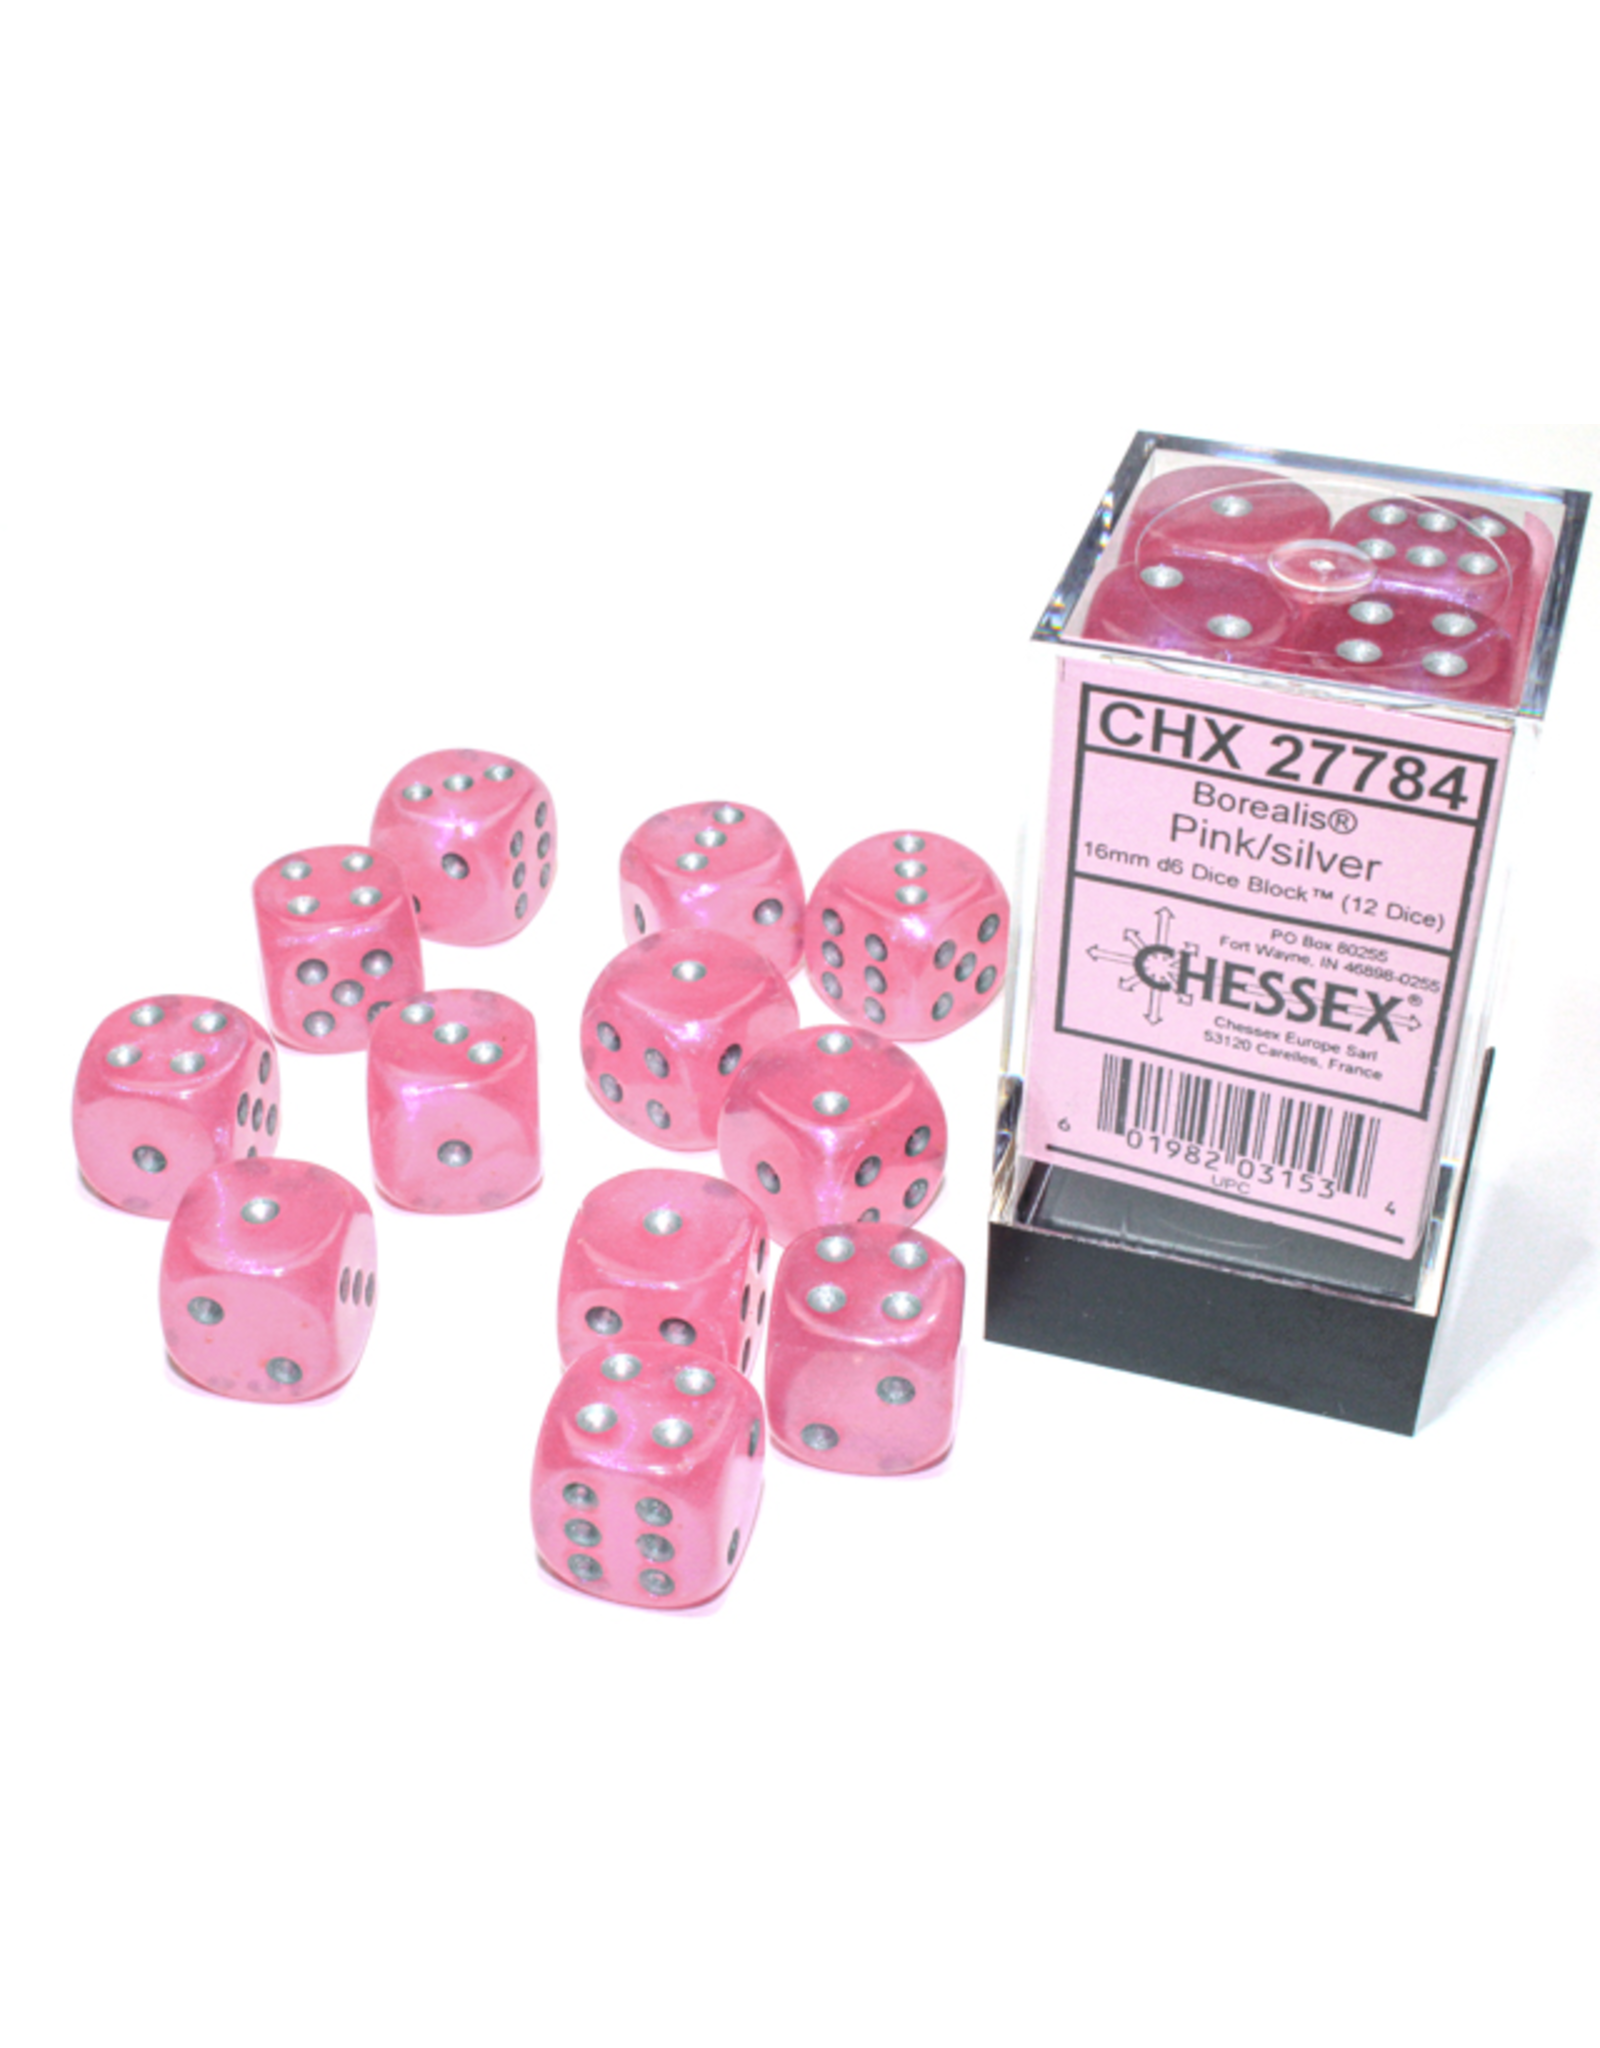 Chessex D6 Cube 16mm Borealis Luminary Pink with Silver Pips (CHX)